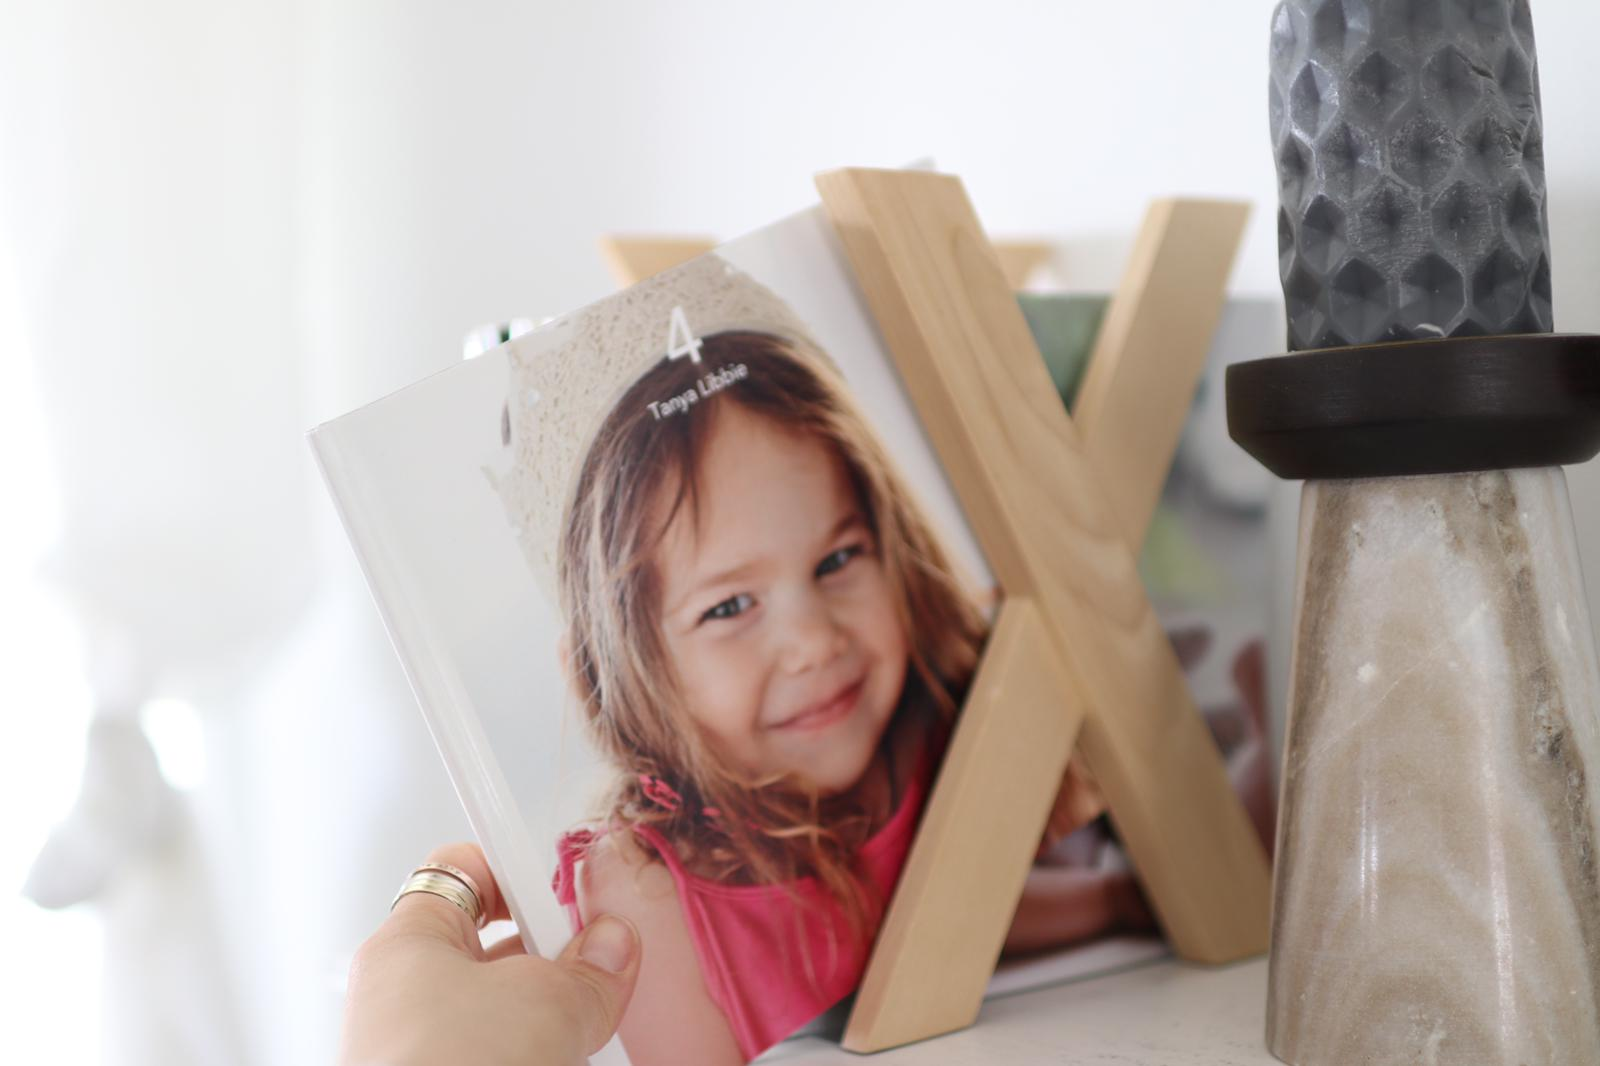 a stack of photo albums that create quality time with family